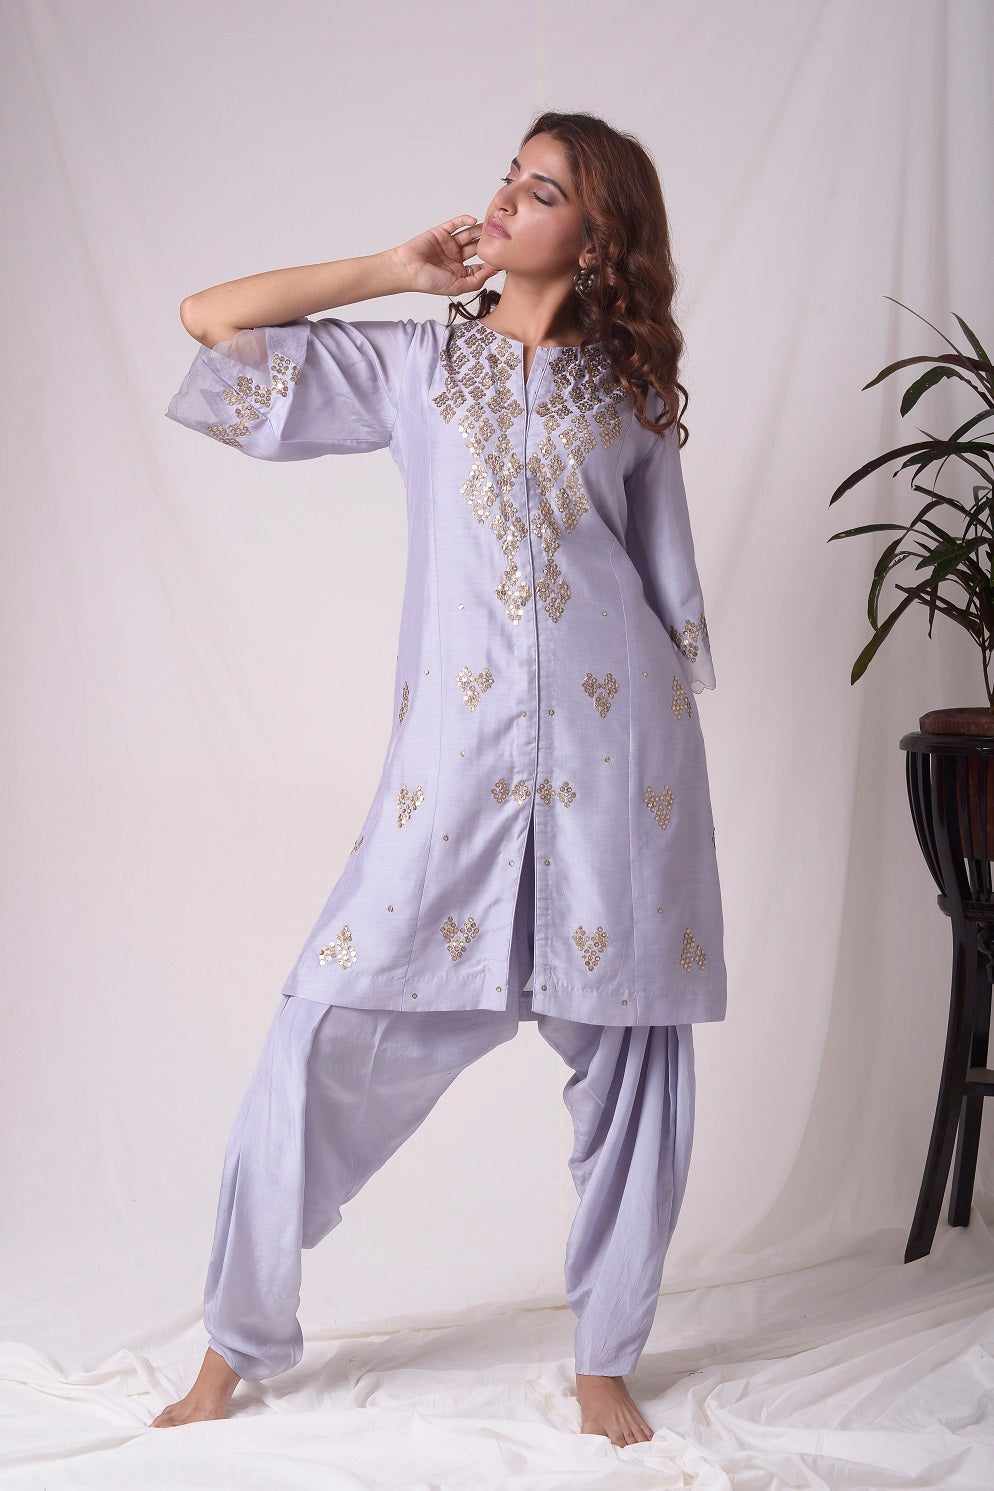 Buy lavender embroidered chanderi suit online in USA. Suit has simple golden work. Kurta has 3/4 length sleeves with net like at border, dhoti and rhombus neckline. Simple look makes it elegant. Be the talk of parties and weddings with exquisite designer gowns from Pure Elegance Indian clothing store in USA. Shop online now.-full view-3